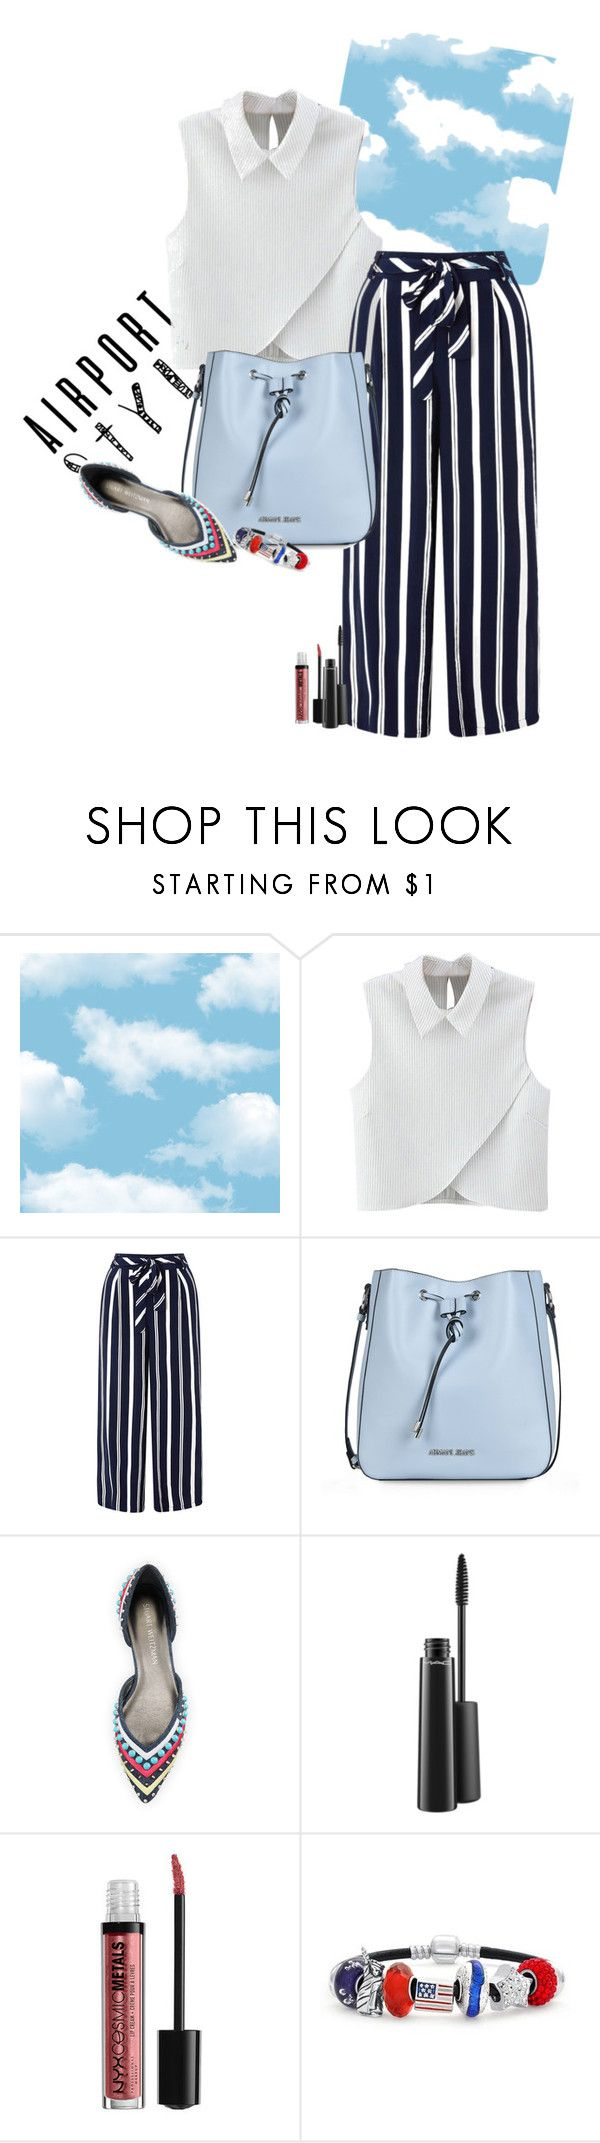 """""""On AIR"""" by claire86-c on Polyvore featuring moda, WithChic, Monsoon, Armani Jeans, Stuart Weitzman, MAC Cosmetics, Bling Jewelry, contest, polyvorecommunity e contestentry"""